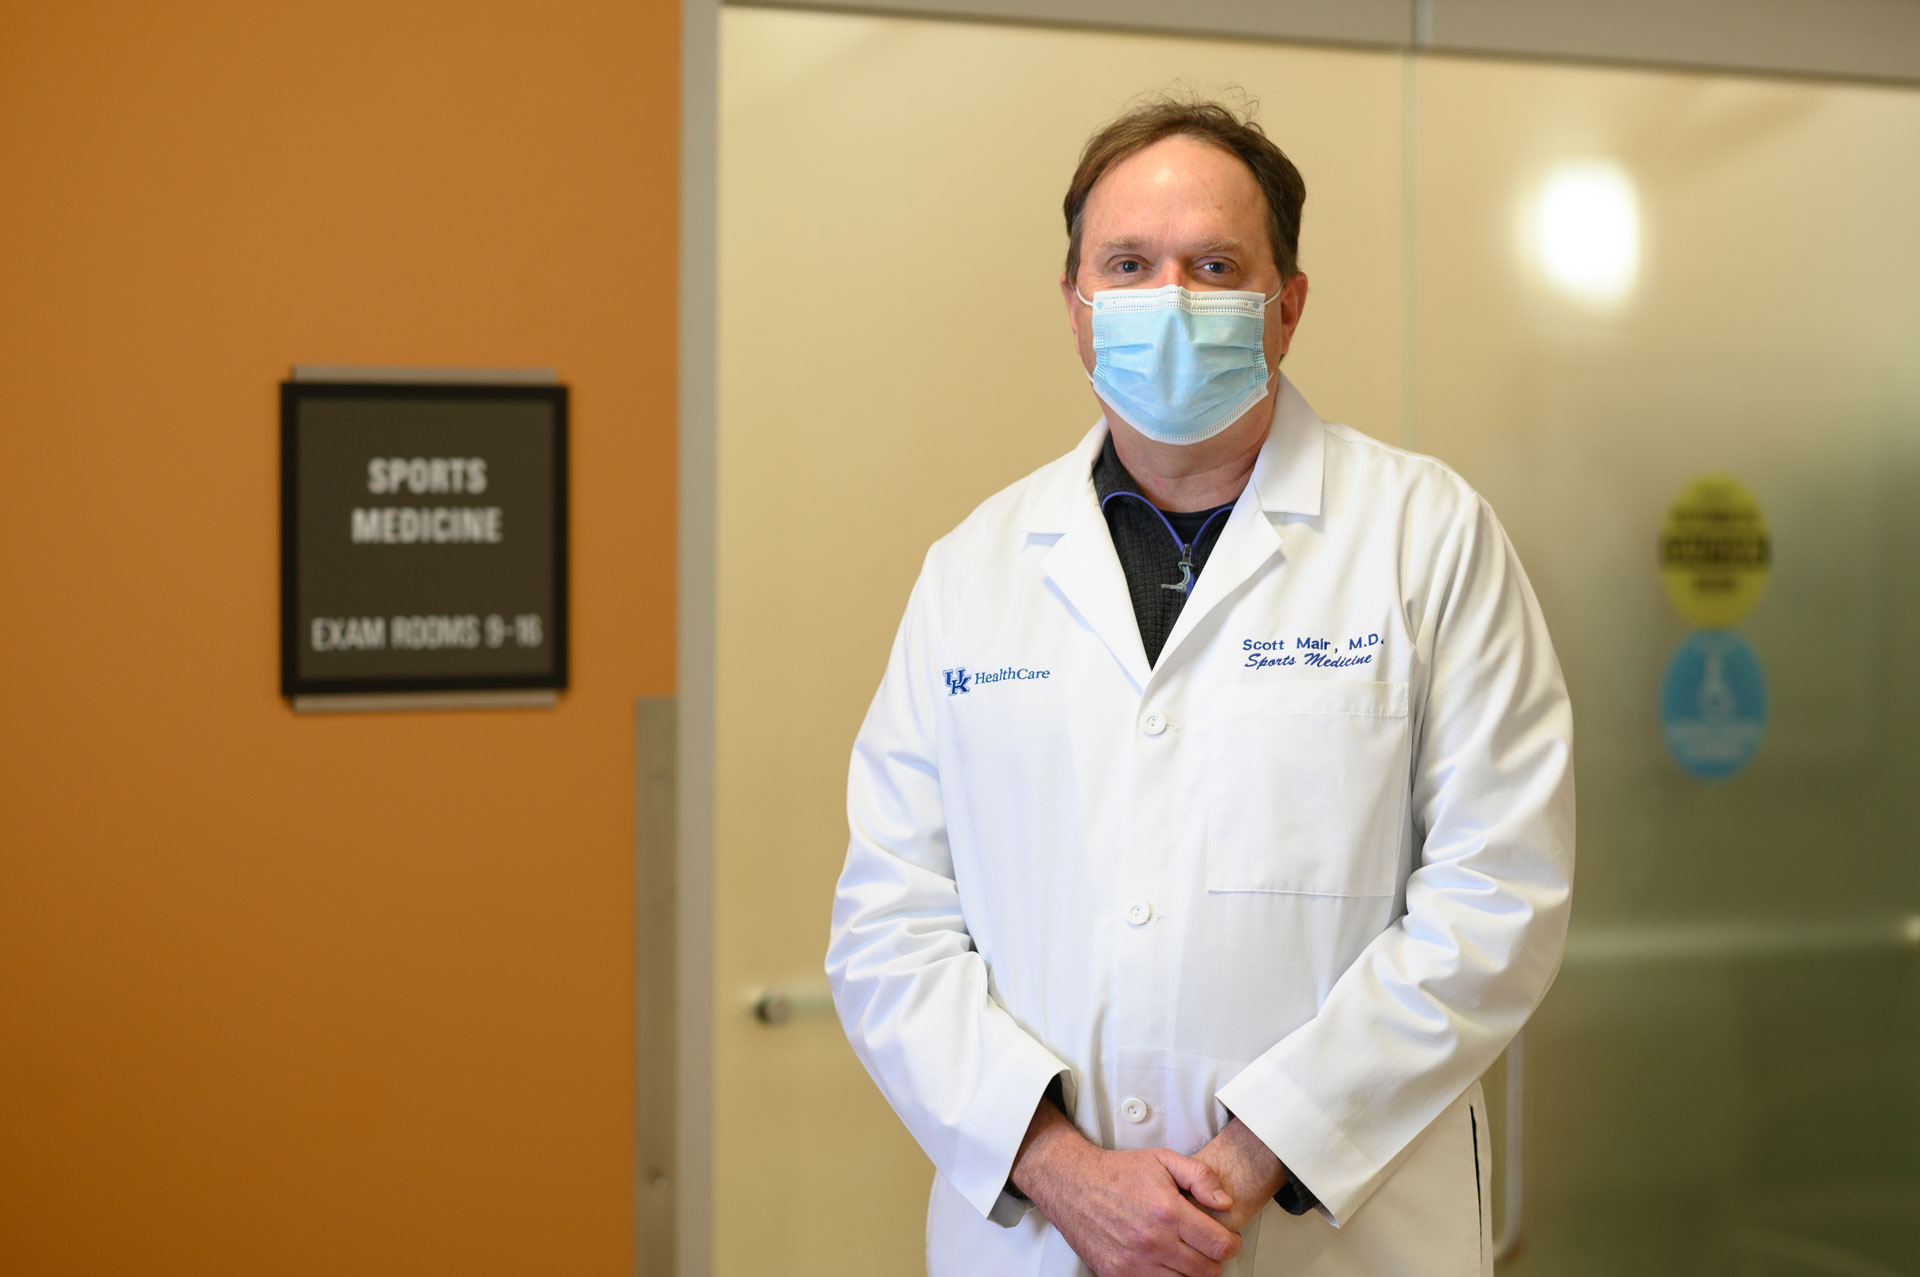 A portrait of Dr. Scott Mair, a middle-aged white man with brown hair and a white lab coat. He is standing next to a door labeled Sports Medicine Exam Rooms and is wearing a blue surgical mask.